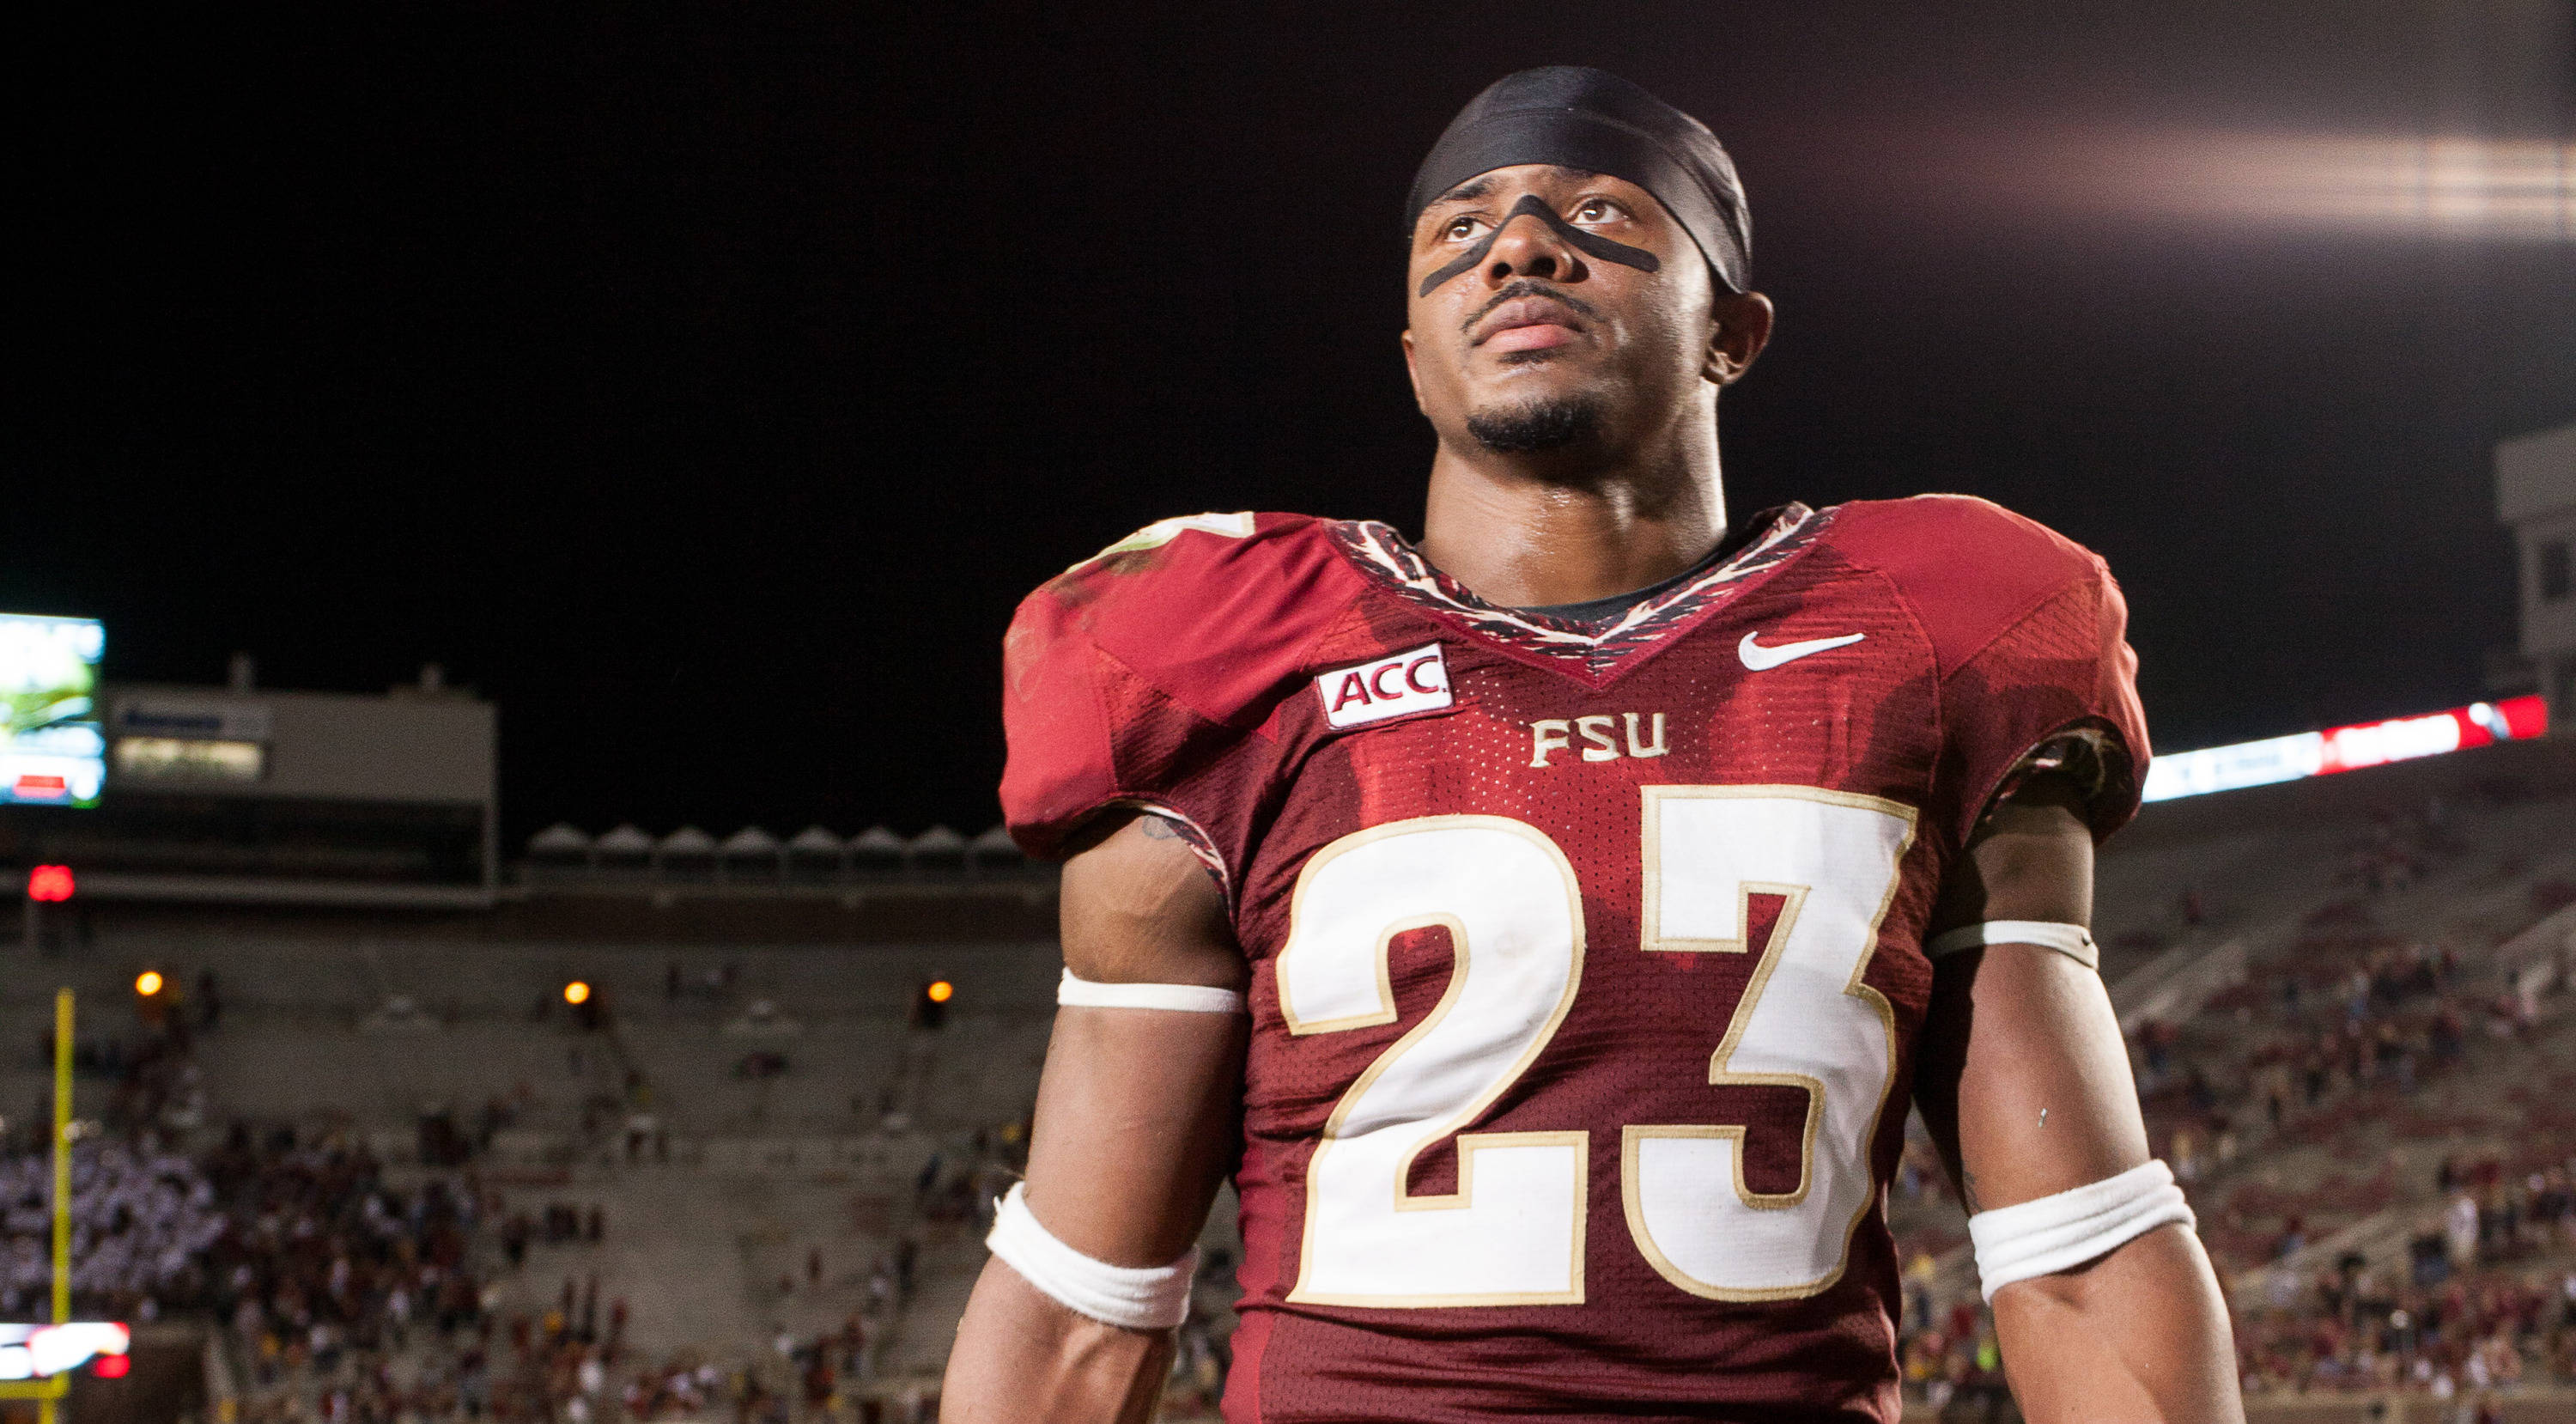 Gerald Demps (23) walks off the field after his final home game as a senior, FSU's 80-14 victory over Idaho, in Tallahassee, Fla on Saturday, November 23, 2013. Photos by Mike Schwarz.